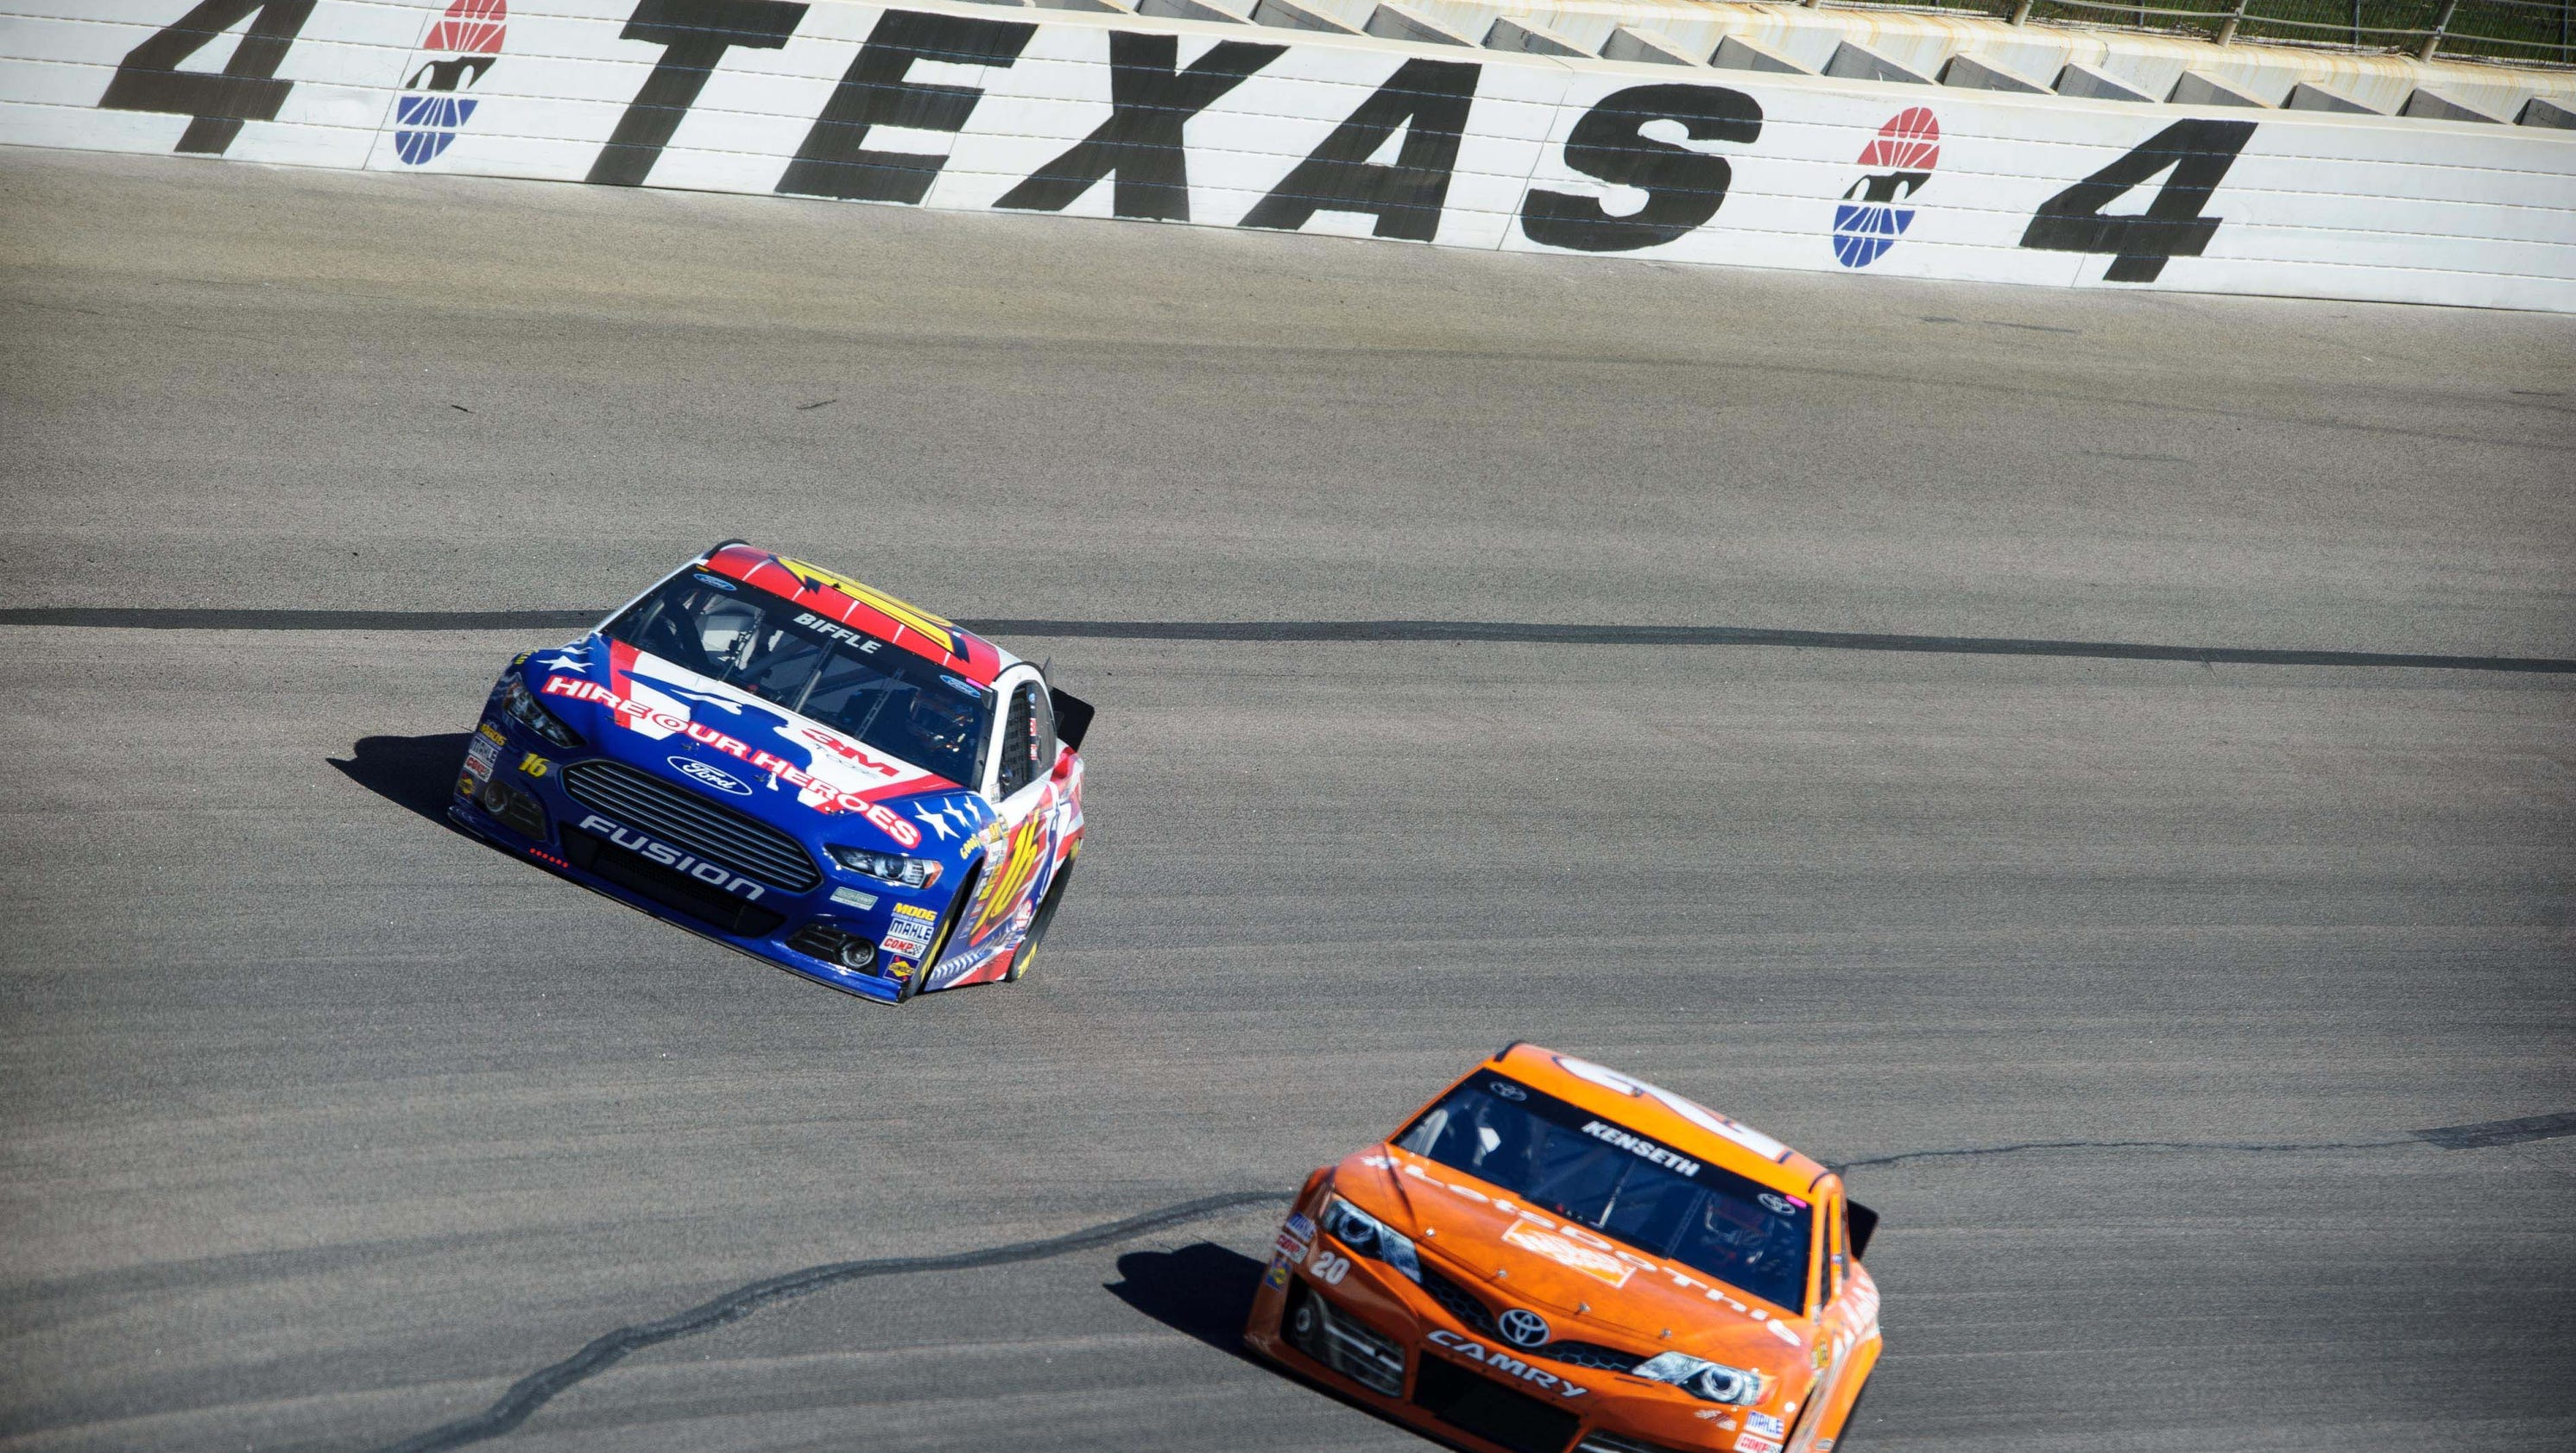 Nascar at texas start time lineup tv schedule more for Starting lineup texas motor speedway